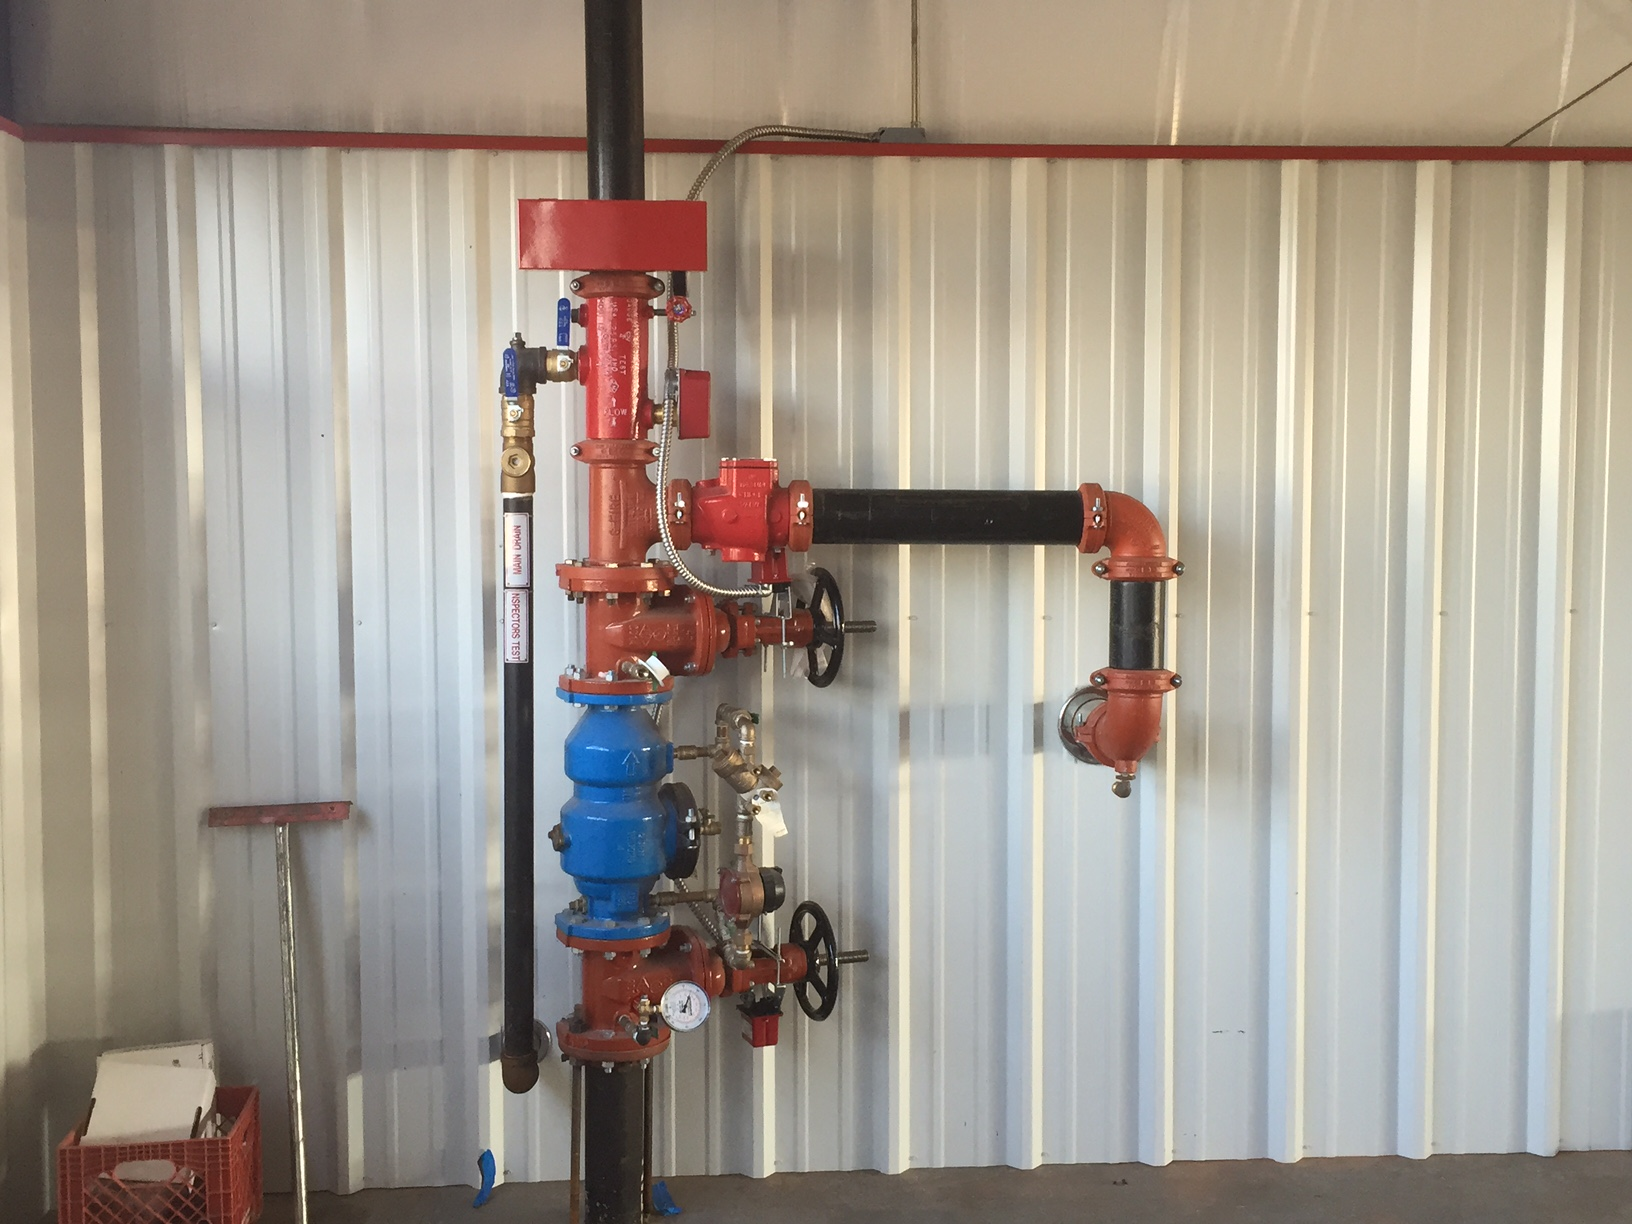 Fire Station Fire Suppression Sprinkler Safety Edmond Deer Creek